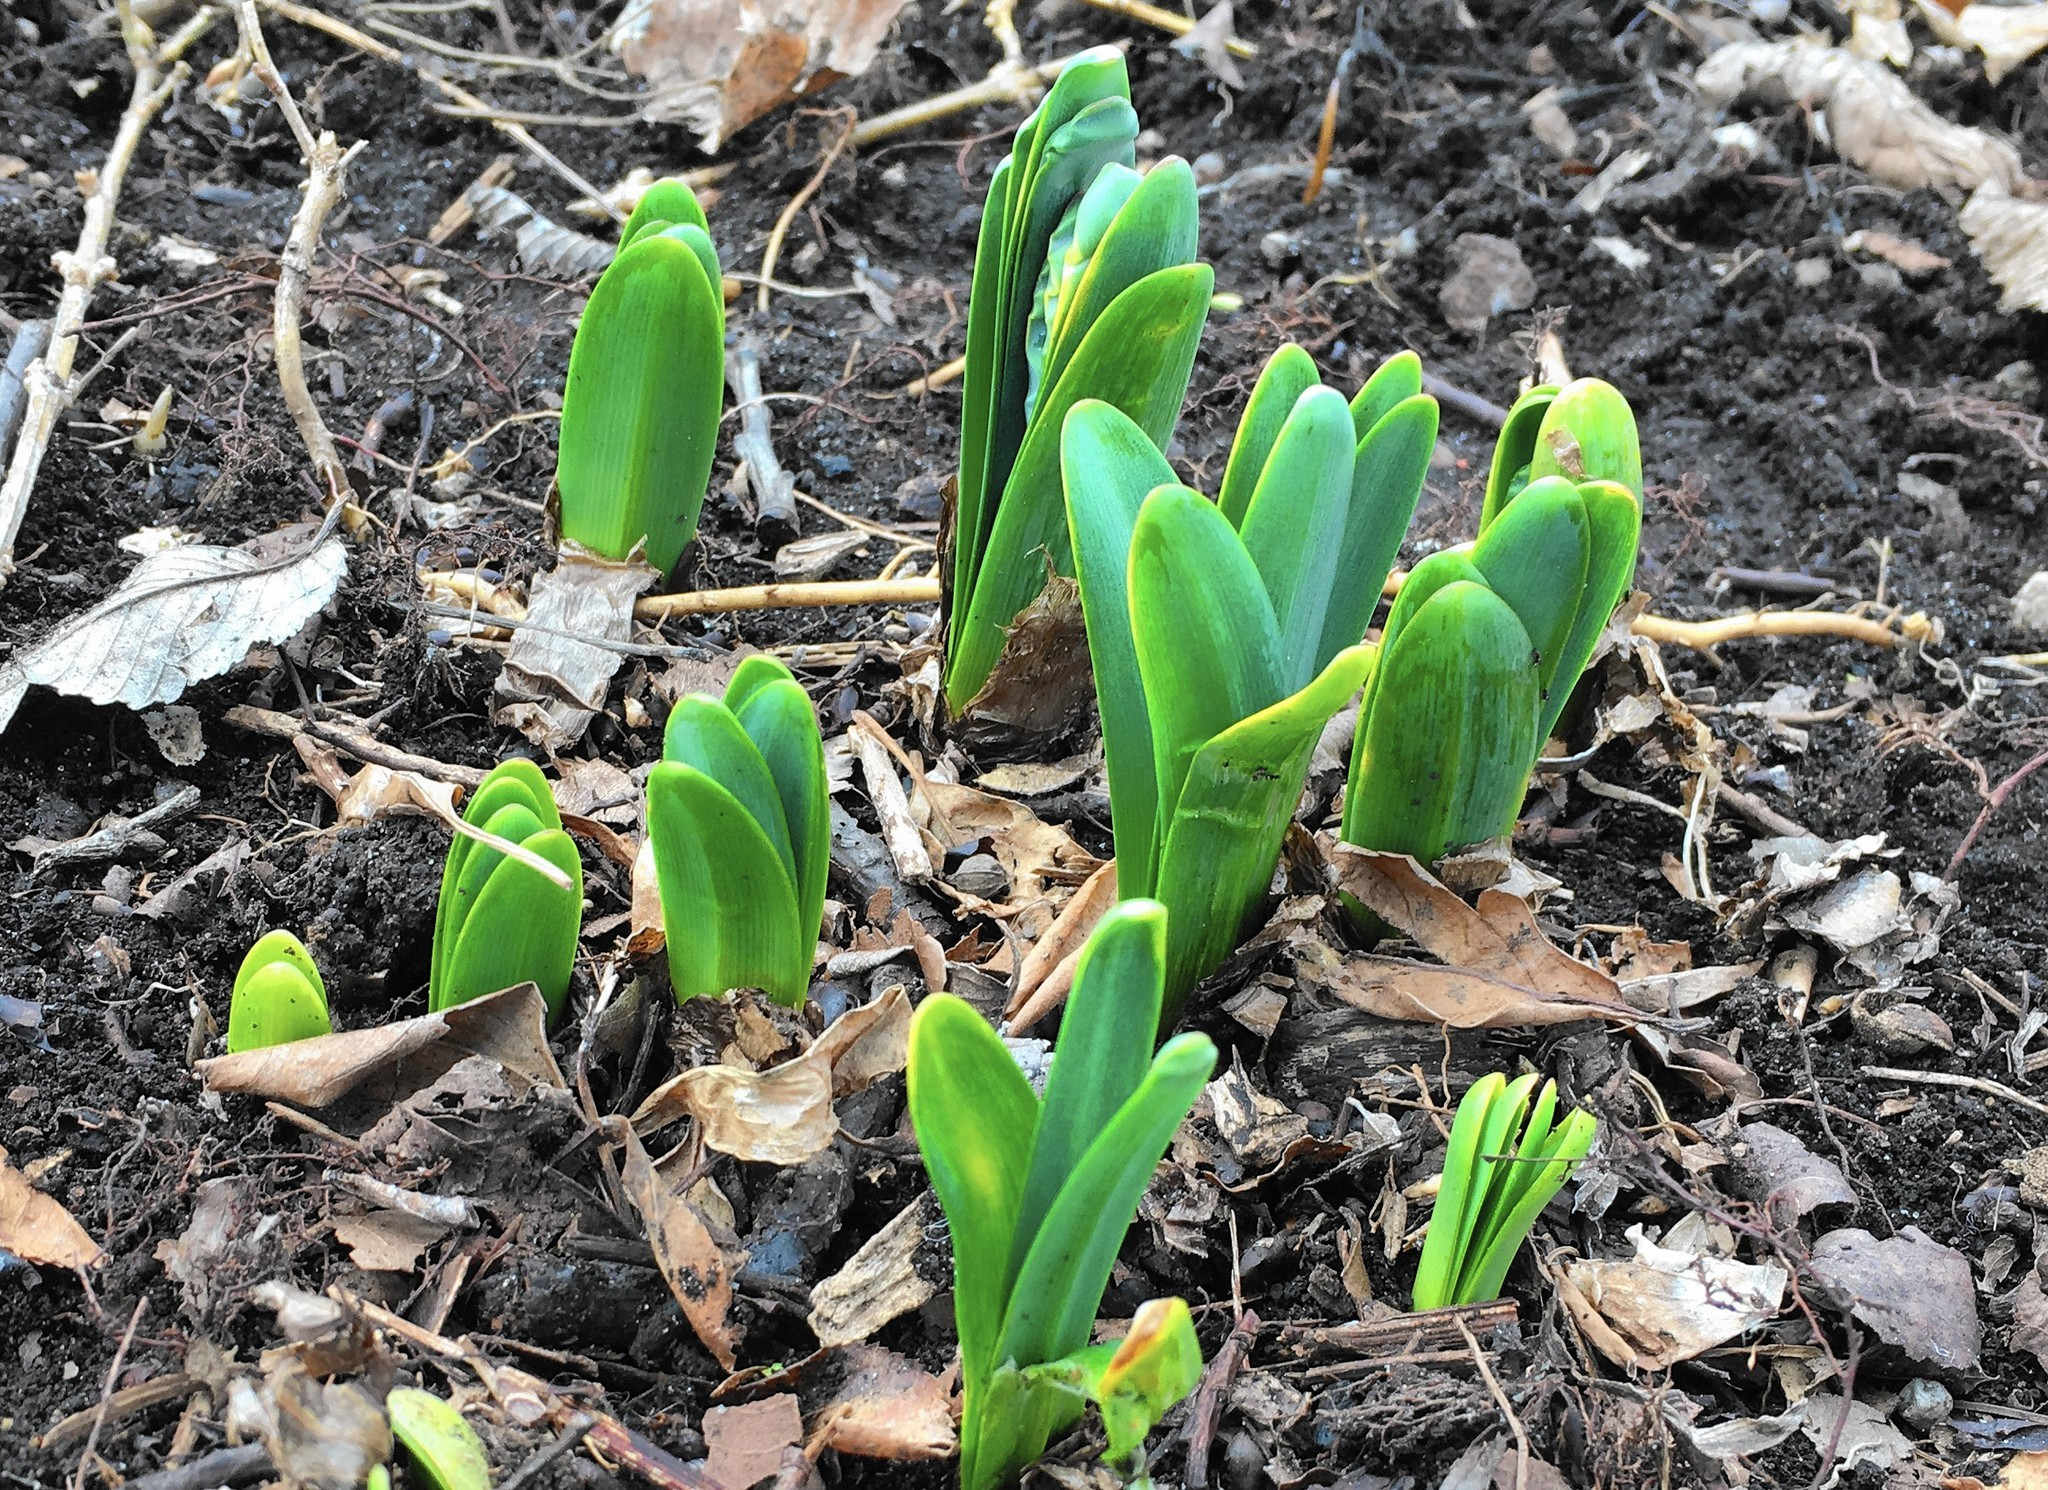 Gardeners, don't stress about Chicago's warm spell